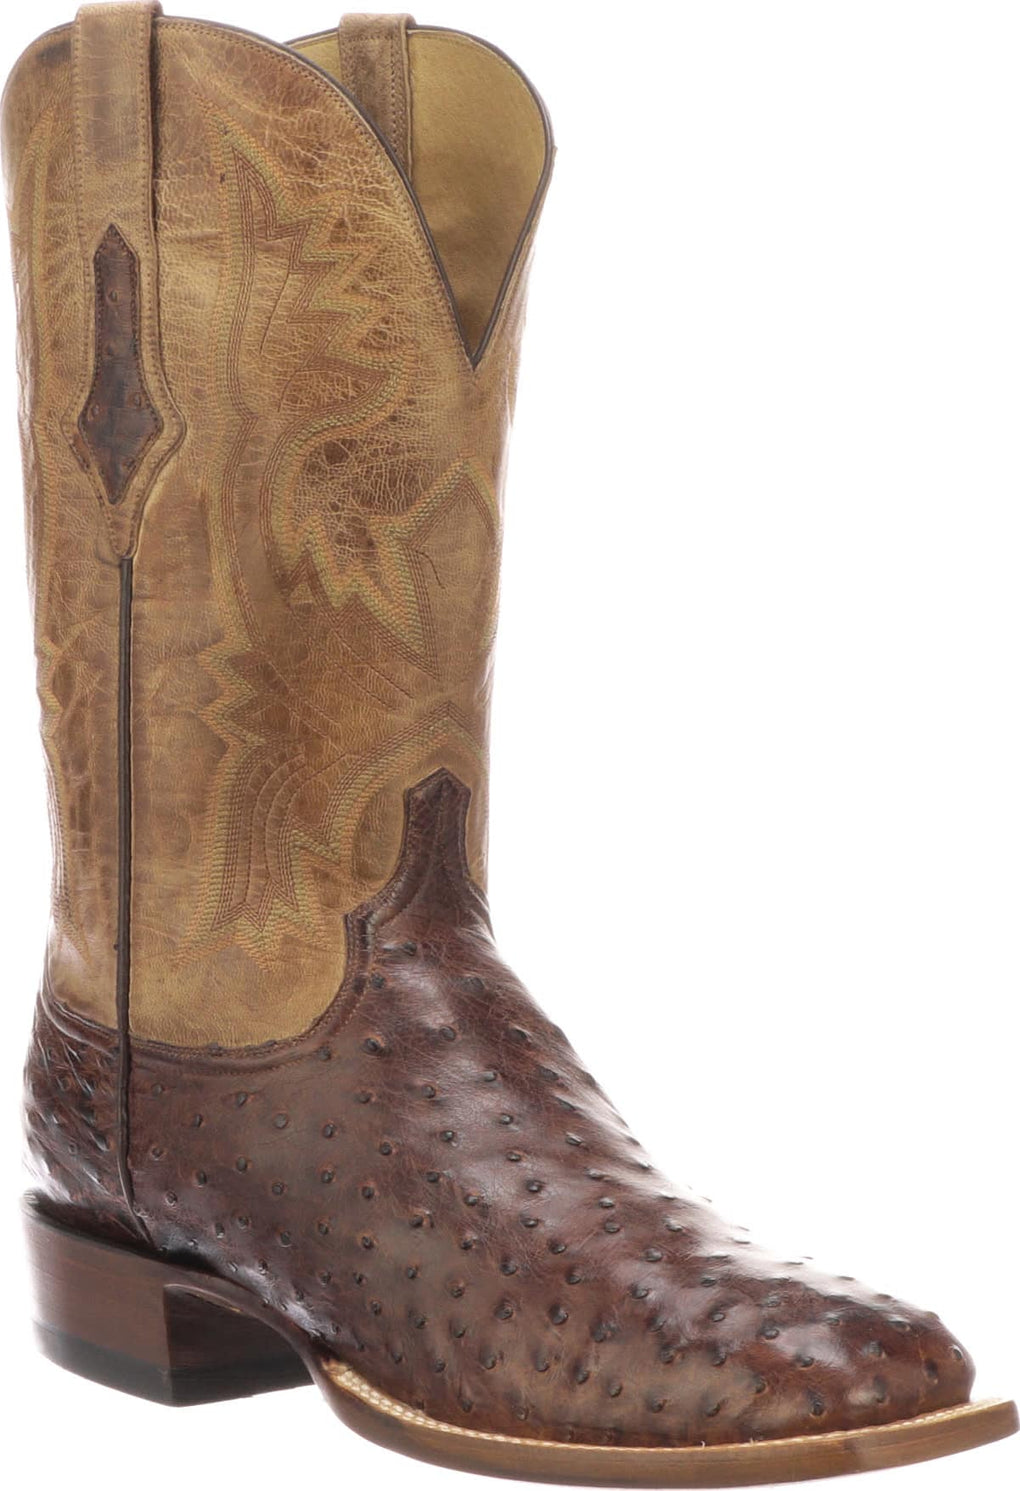 MEN'S LUCCHESE CLIFF - ANTIQUE DARK BROWN FULL QUILL OSTRICH BOOTS - El Toro Boots